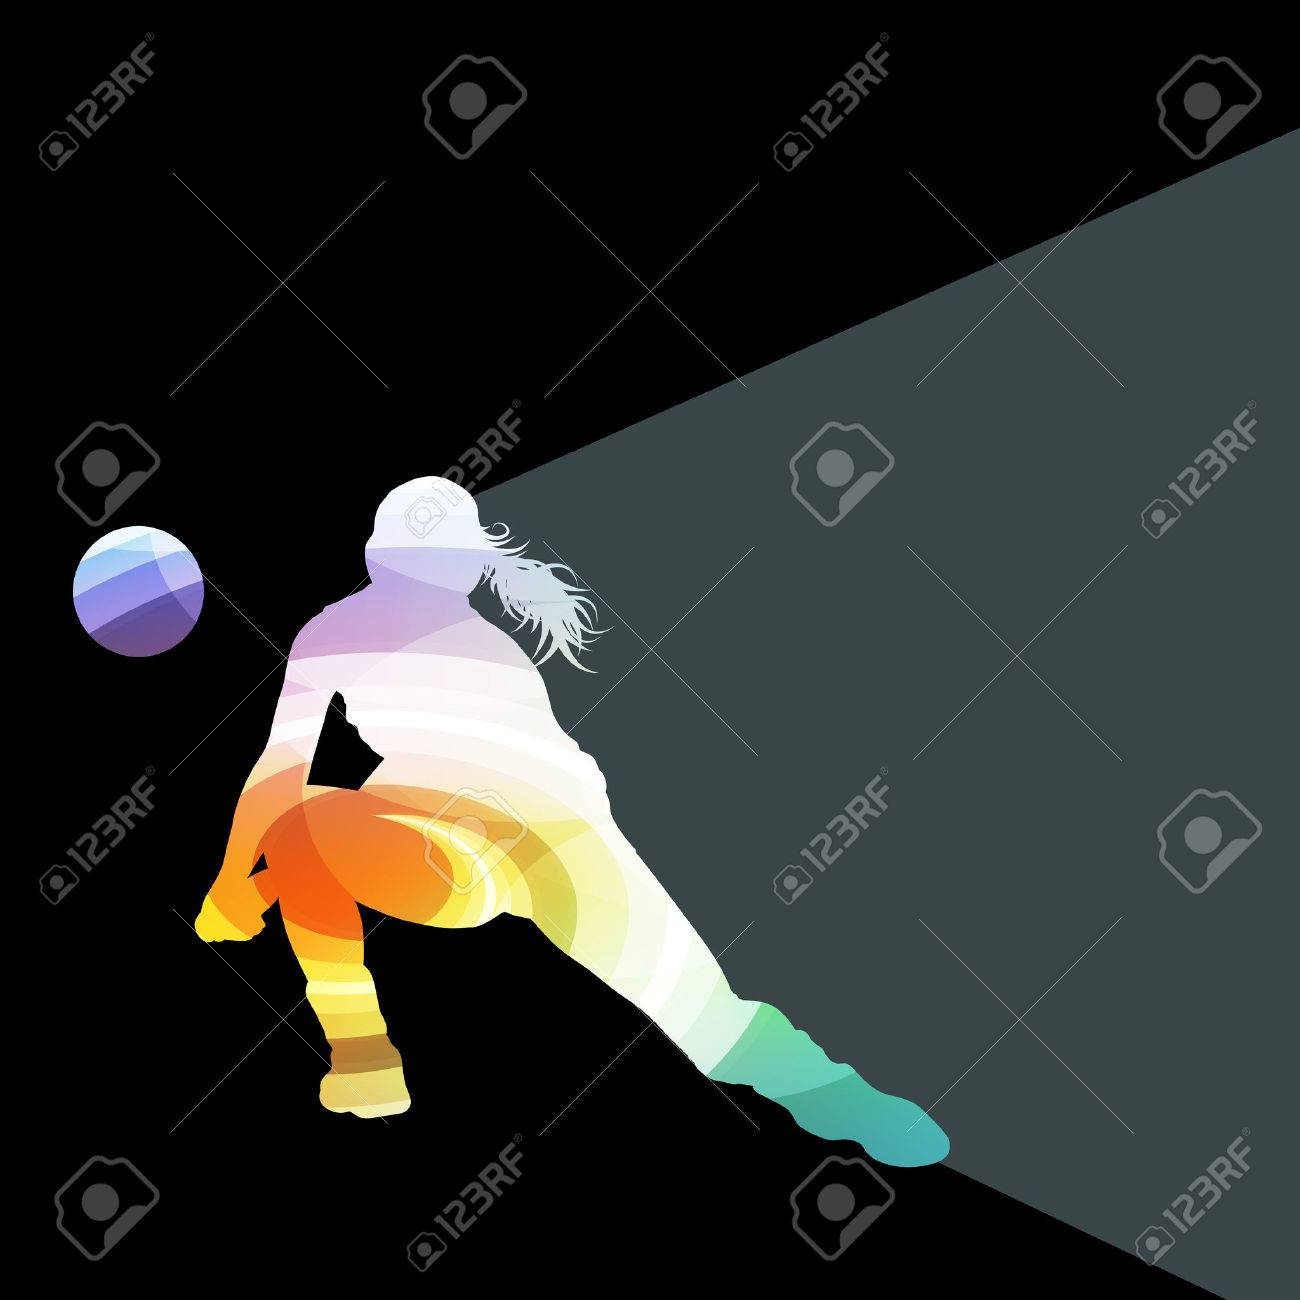 Woman female volleyball player silhouette vector background colorful concept made of transparent curved shapes - 43573614